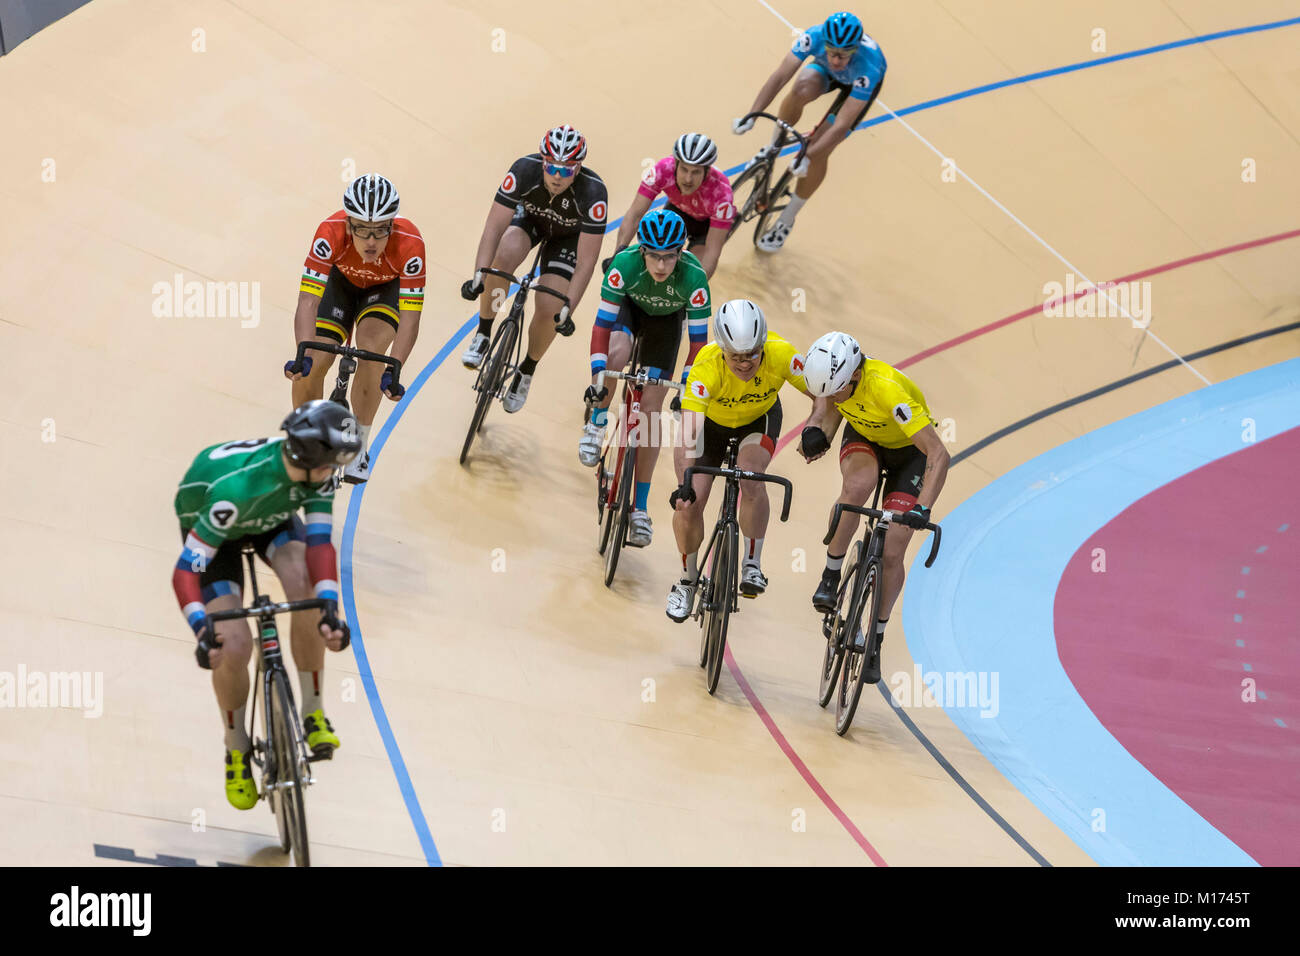 Detroit, Michigan USA - 26 January 2018 - A series of bicycle races celebrated the grand opening of the Lexus Velodrome, - Stock Image